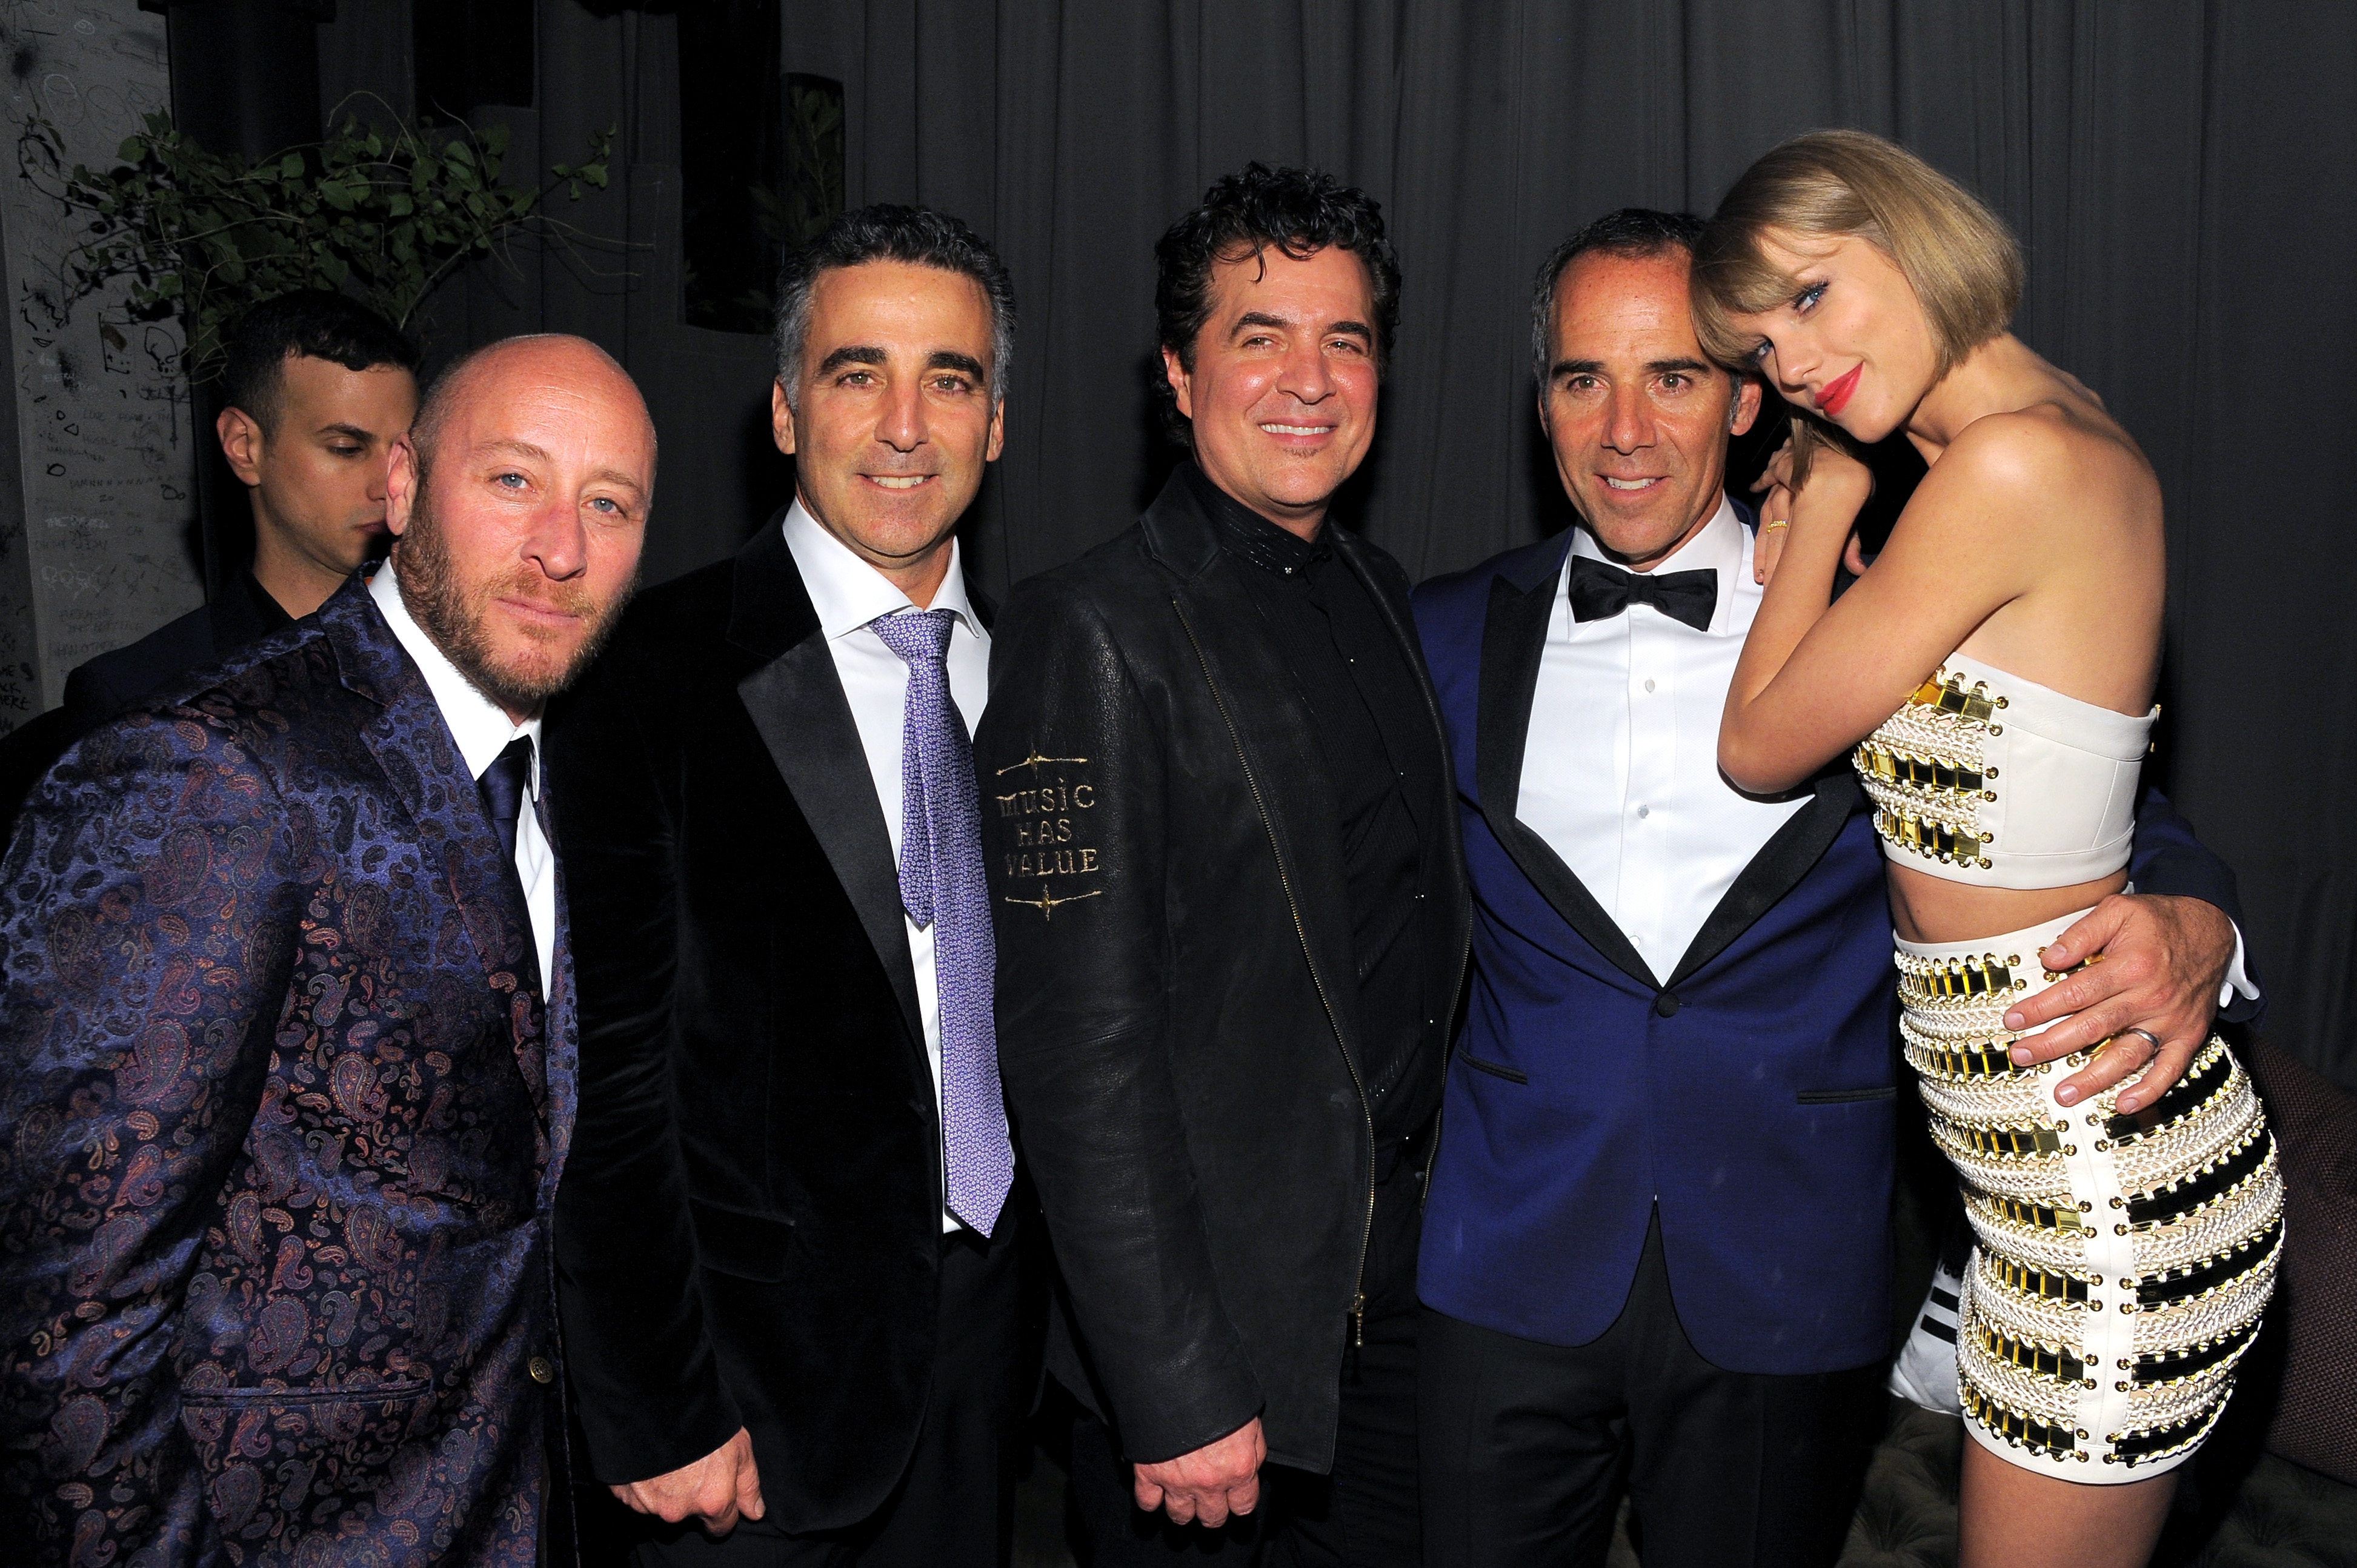 LOS ANGELES, CA - FEBRUARY 15: (L-R) David Nathan, President/COO Republic Records Avery Lipman; Scott Borchetta, CEO of Republic Records Monte Lipman, and recording artist Taylor Swift attend the Republic Records Grammy Celebration presented by Chromecast Audio at Hyde Sunset Kitchen & Cocktail on February 15, 2016 in Los Angeles, California. (Photo by Angela Weiss/Getty Images for Republic Records)